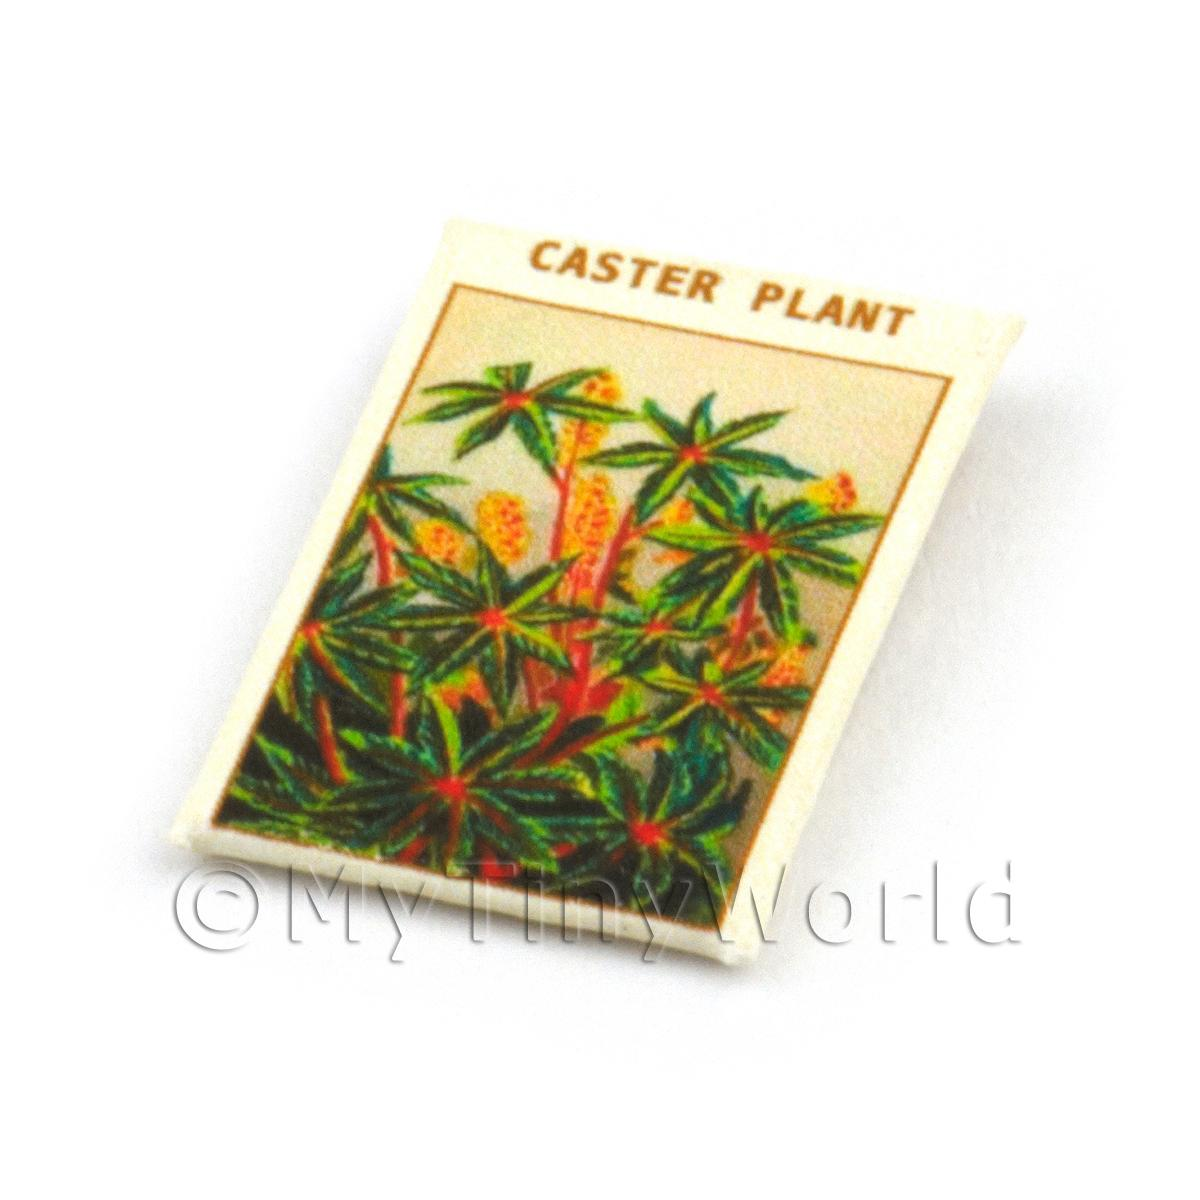 Dolls House Flower Seed Packet - Caster Plant